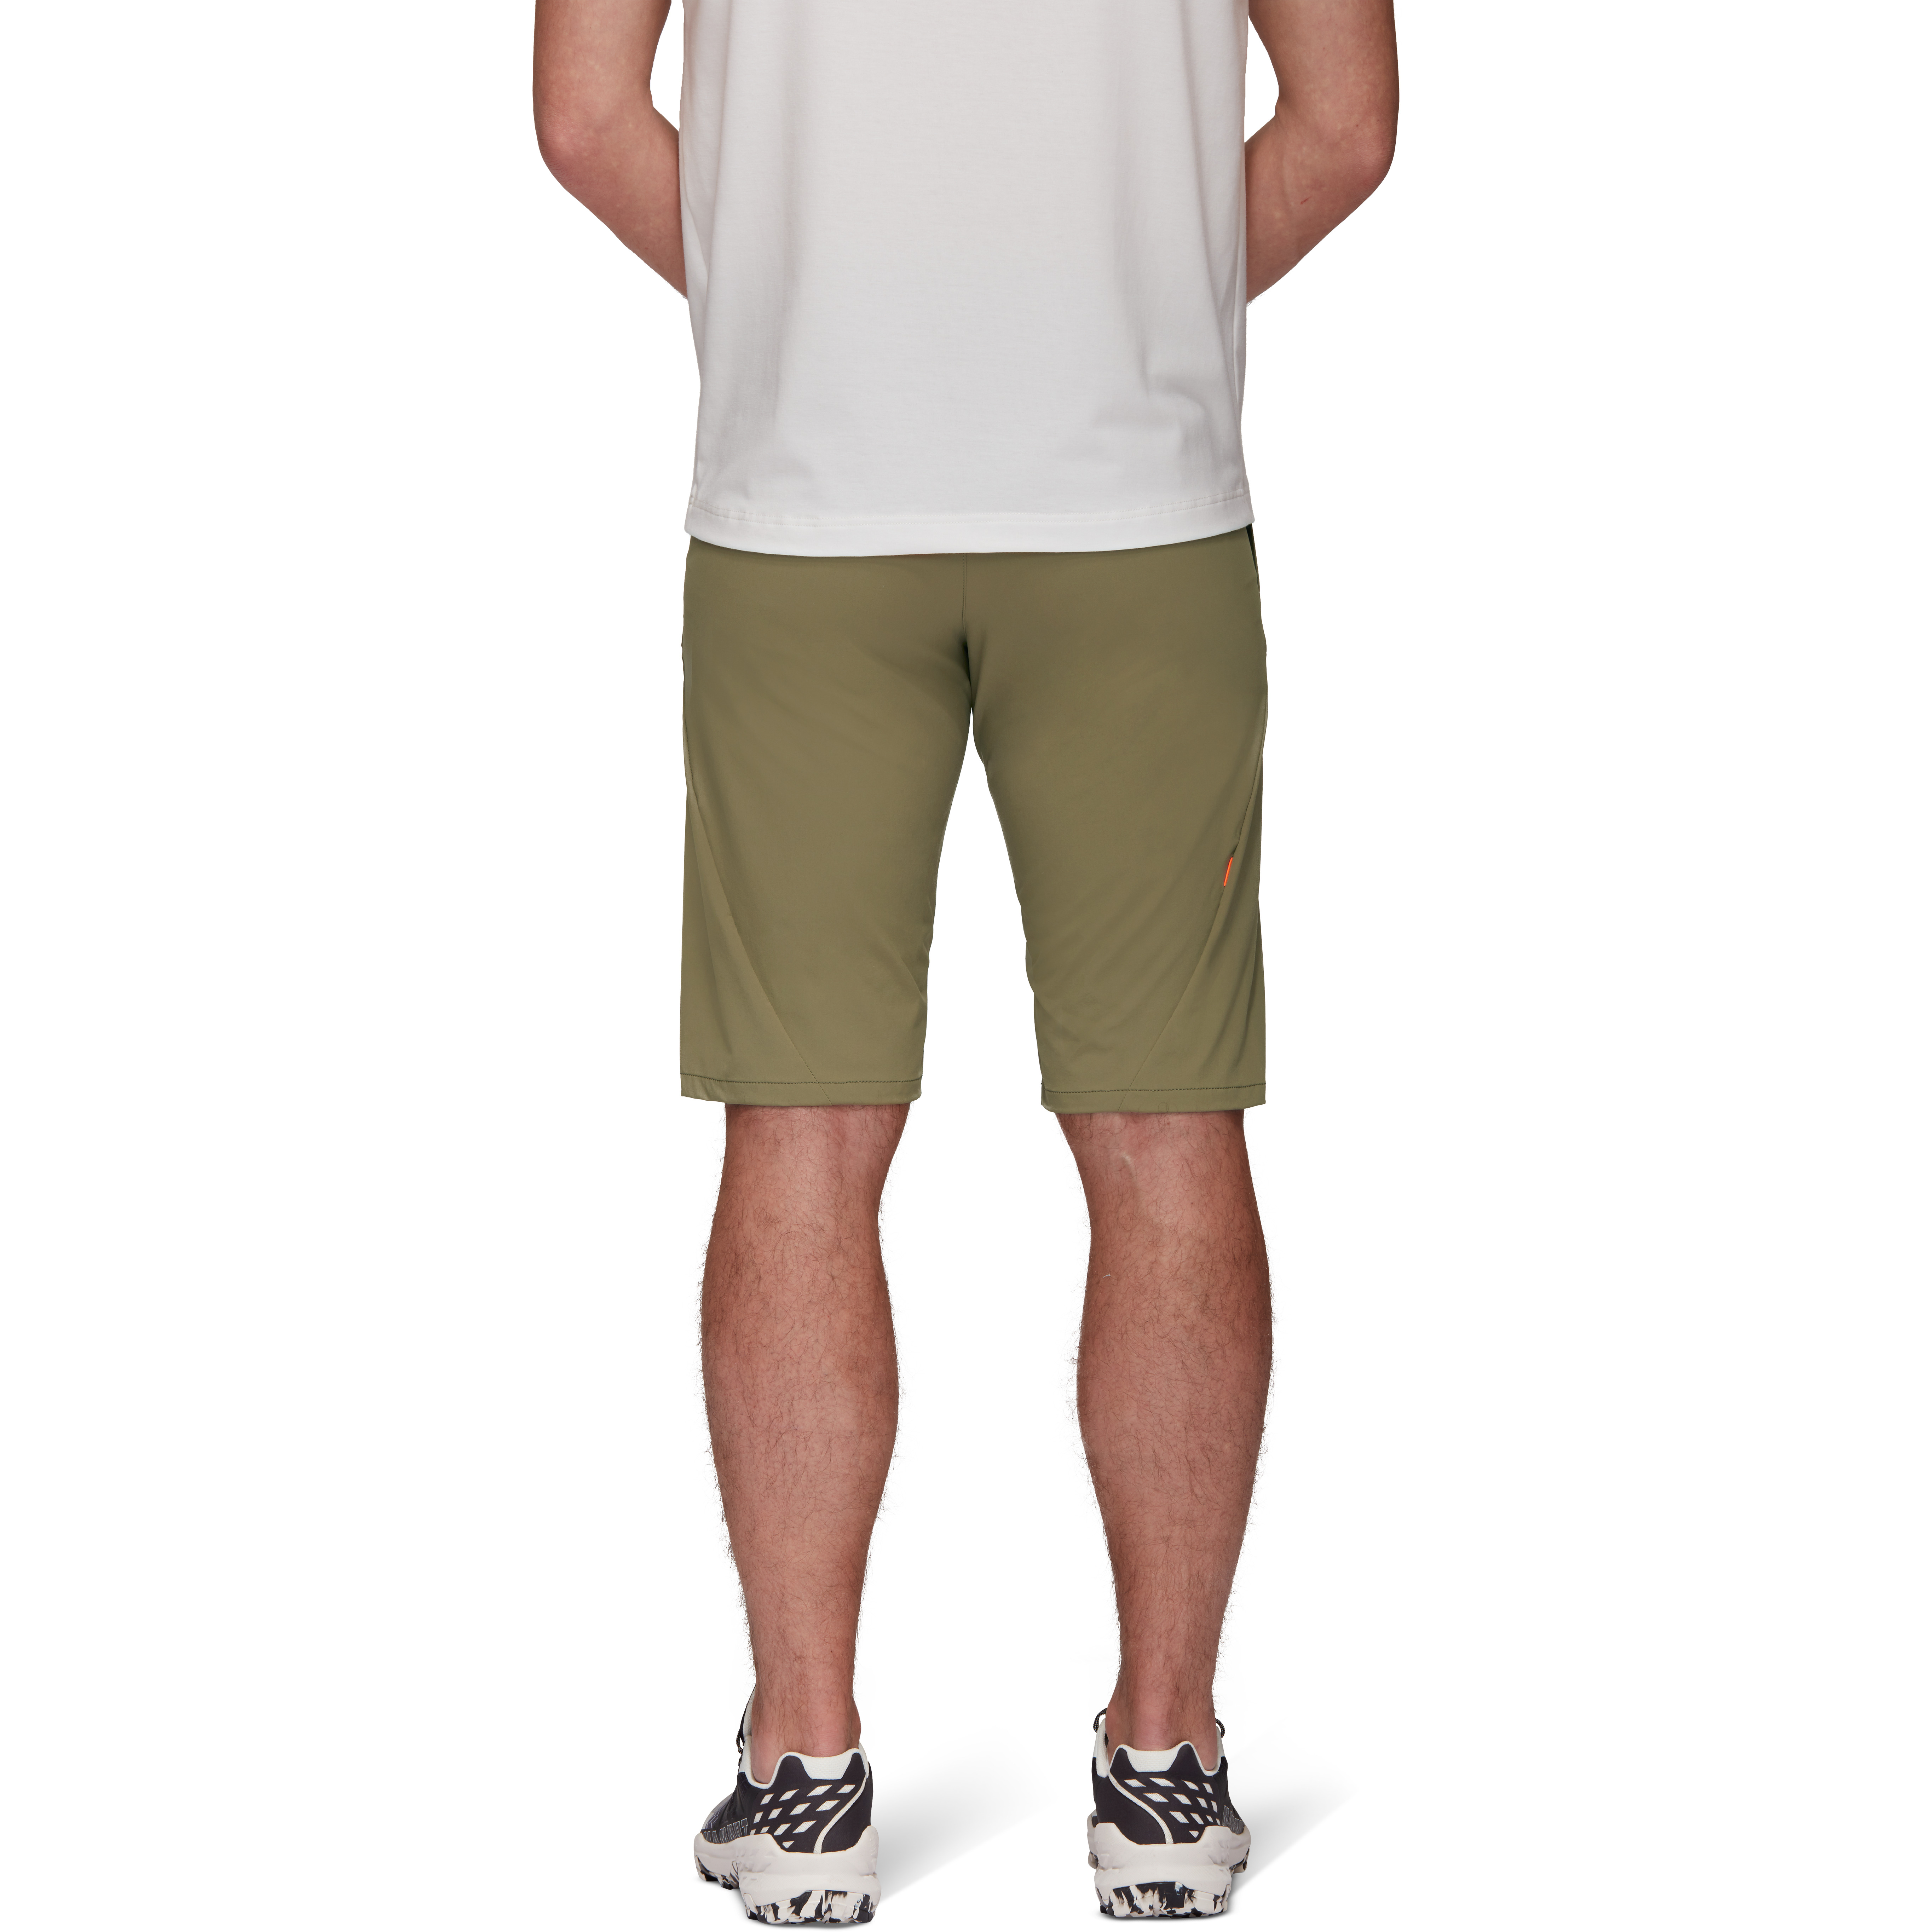 Runbold Shorts Men 2